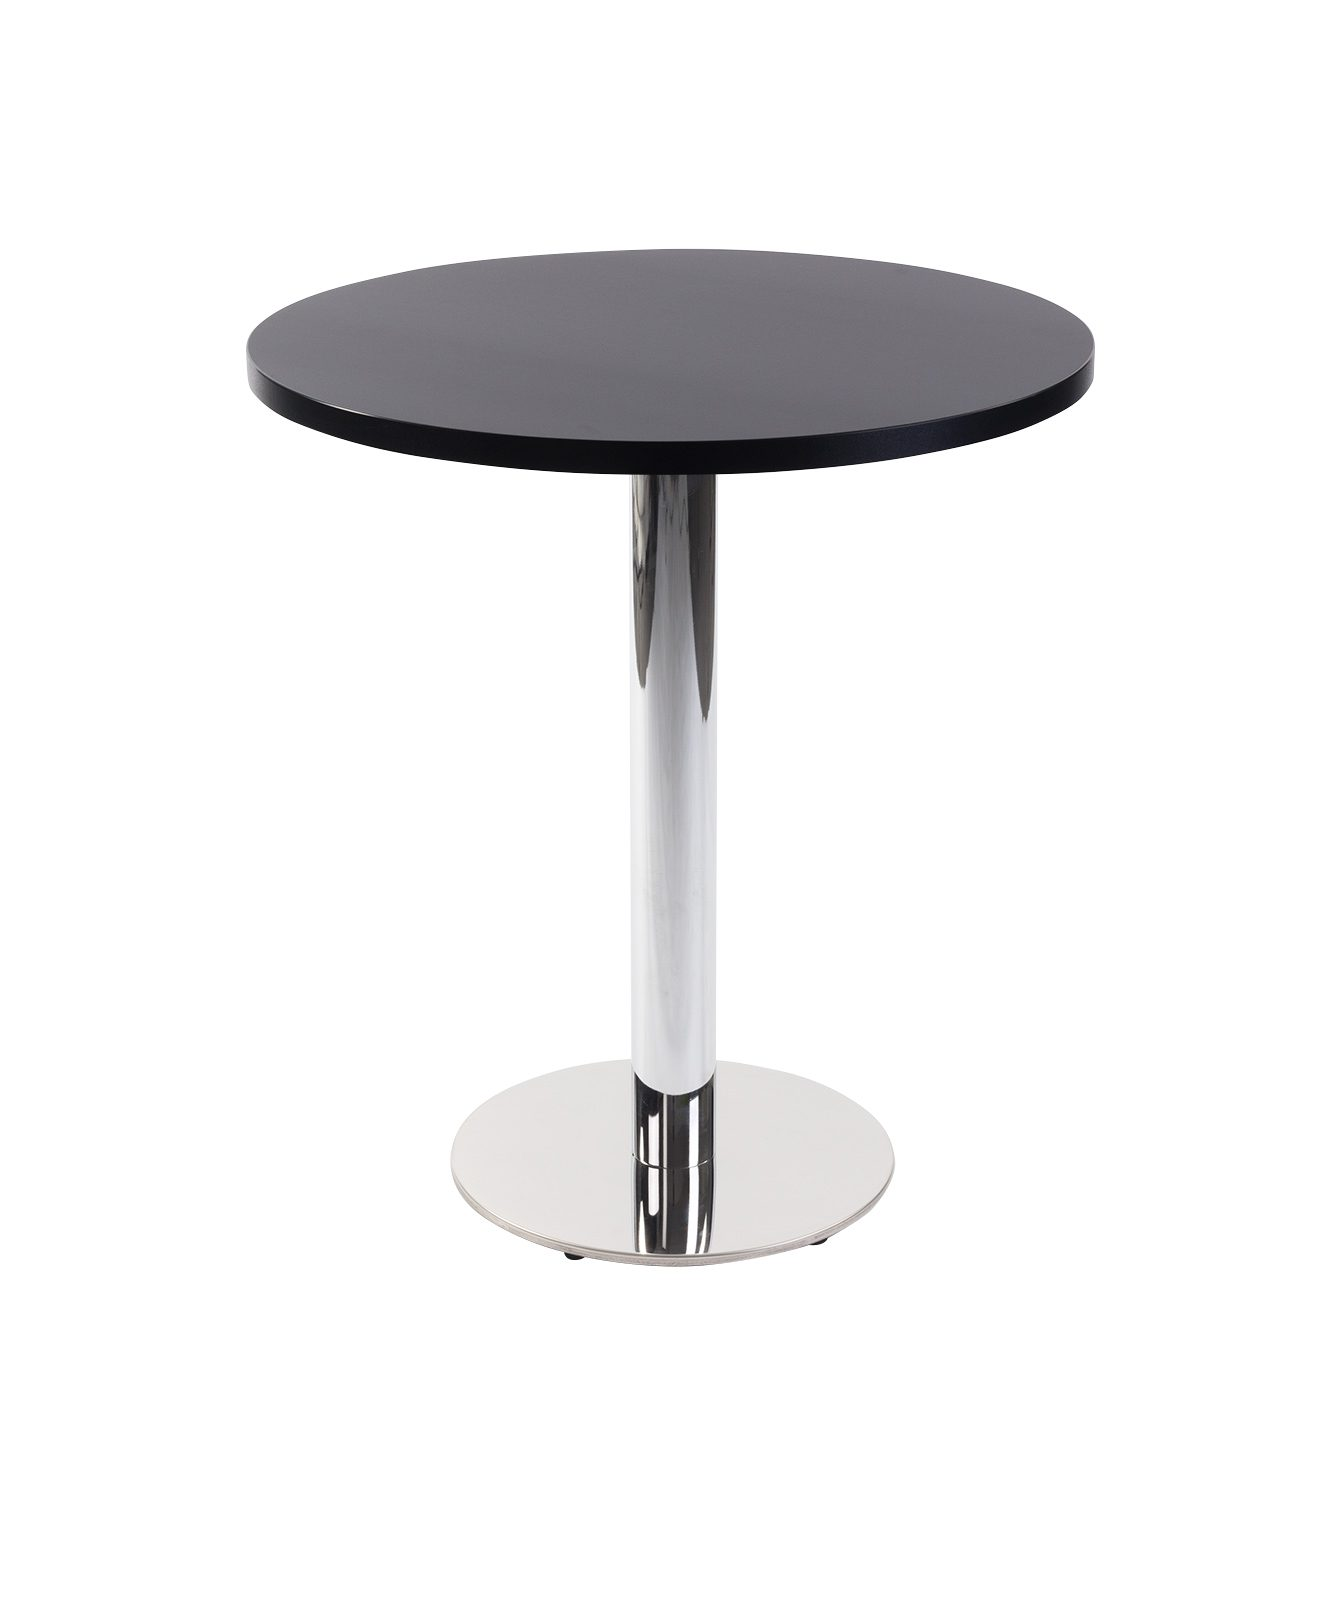 Lucci Round Coffee Table Base Round Laminate Top